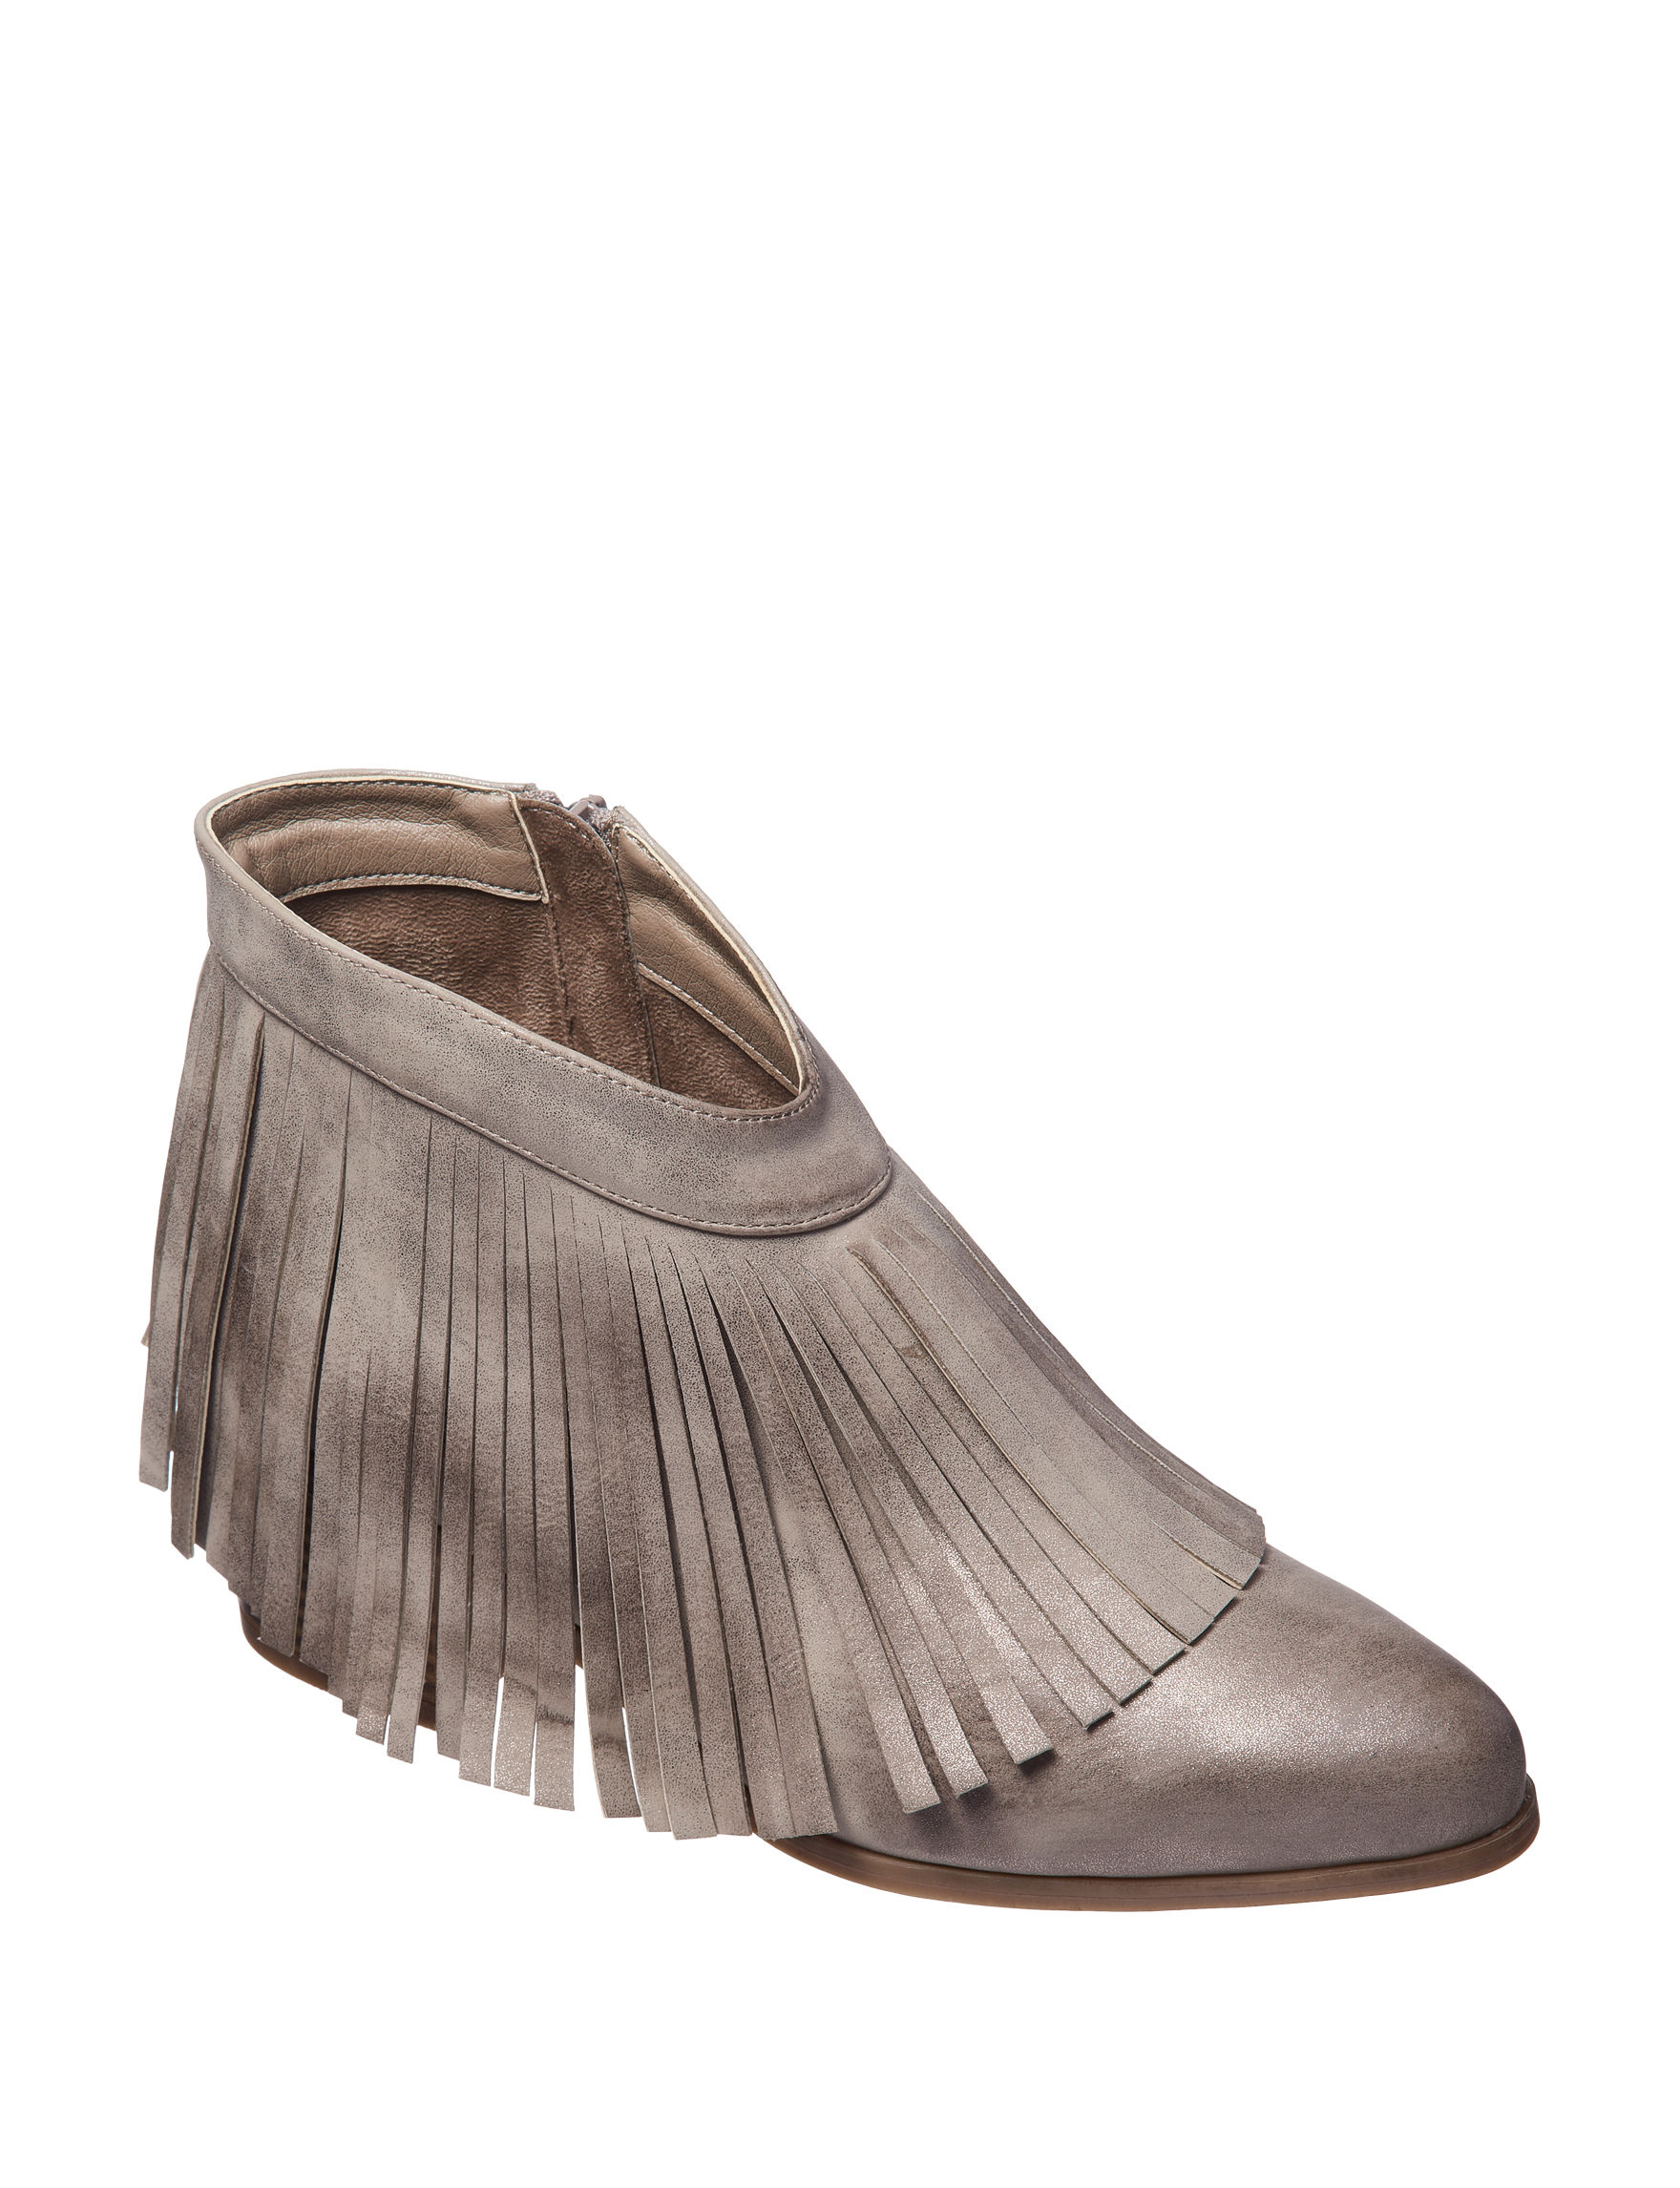 London Rag Metallic Grey Ankle Boots & Booties